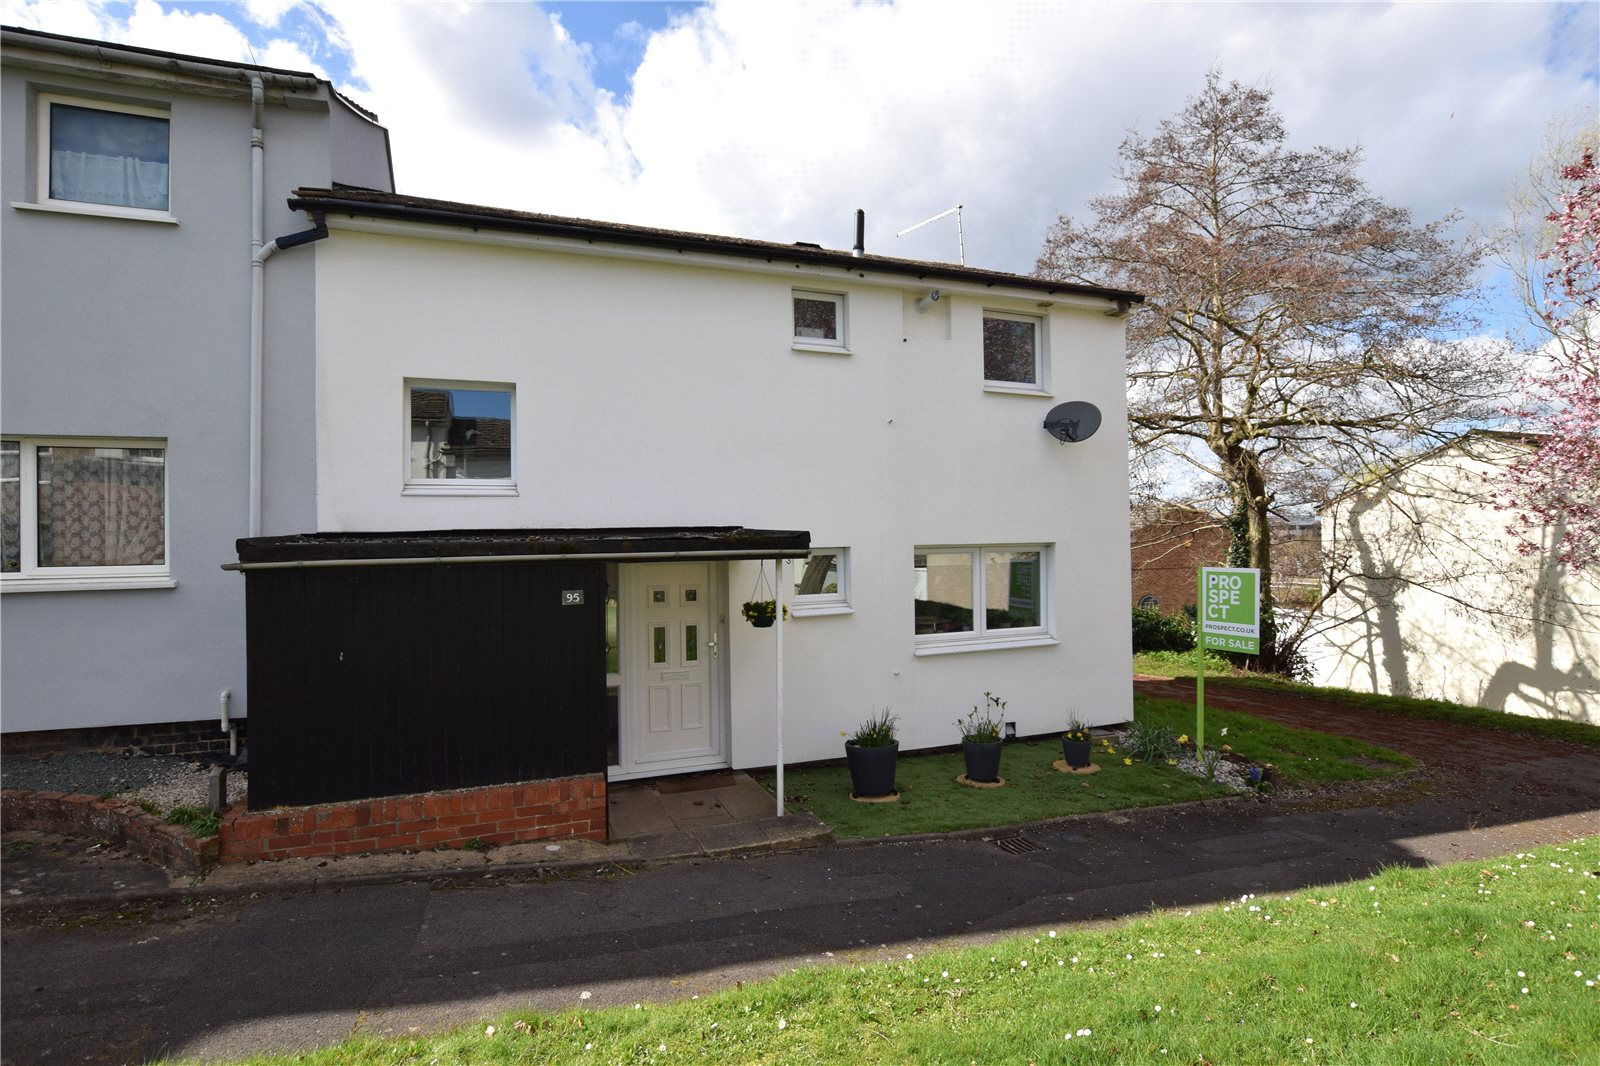 3 Bedrooms End Of Terrace House for sale in Keldholme, Bracknell, Berkshire, RG12